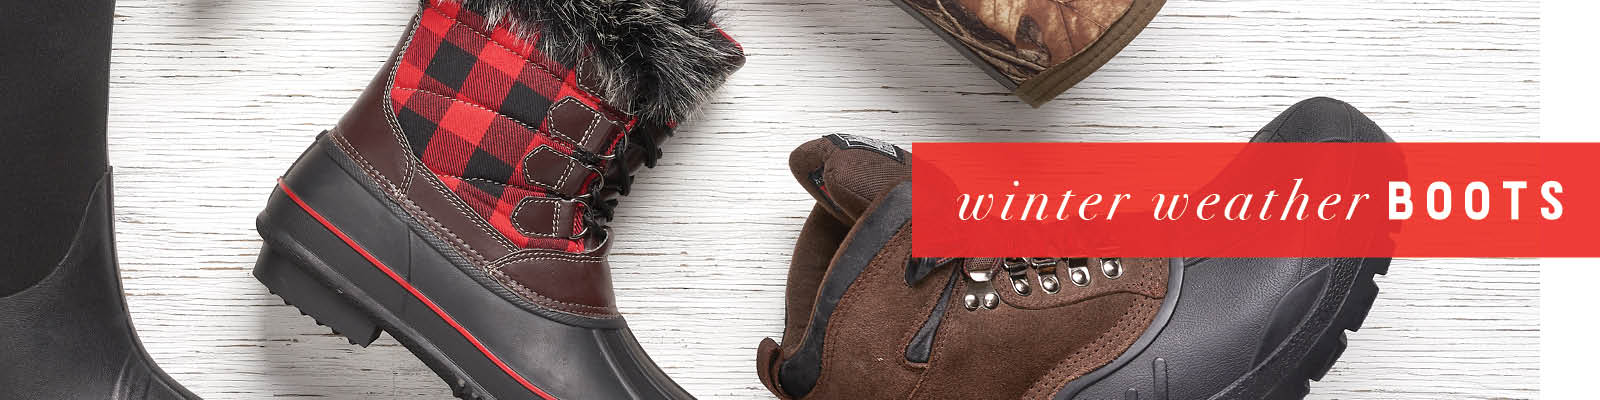 Shop Winter Weather Boots